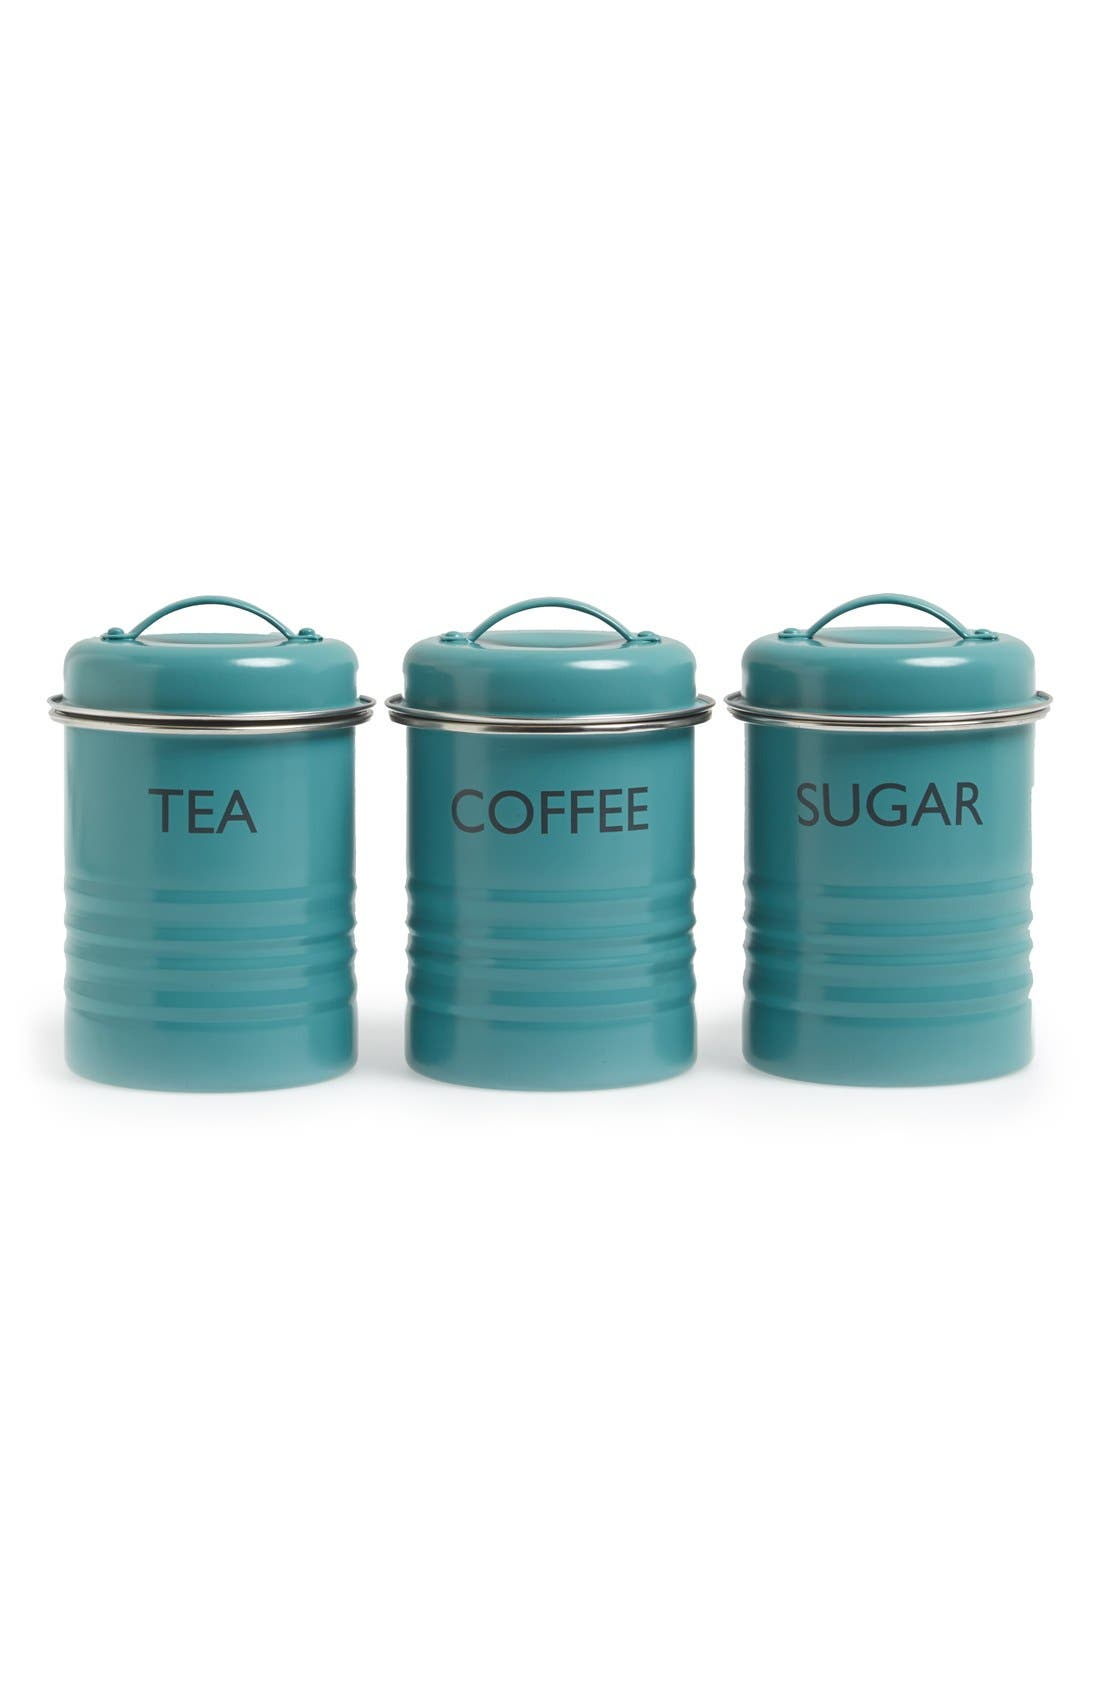 Main Image - Typhoon 'Vintage Kitchen - Summer House' Enamel Tea, Coffee & Sugar Storage Canisters (Set of 3)